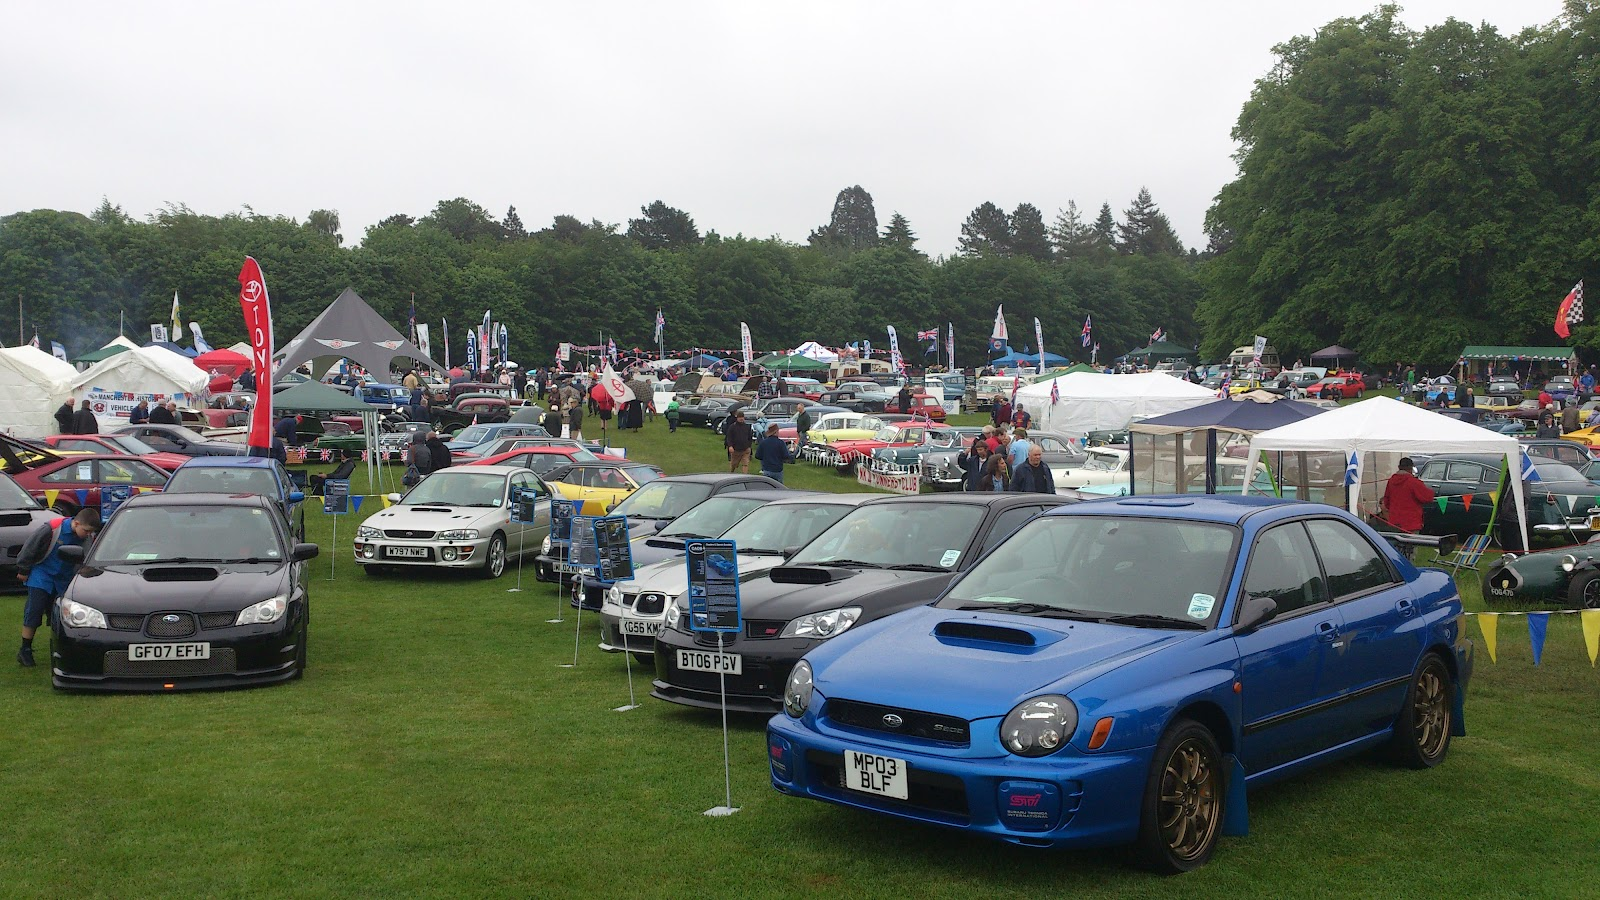 Bmw Car Show Tatton Park